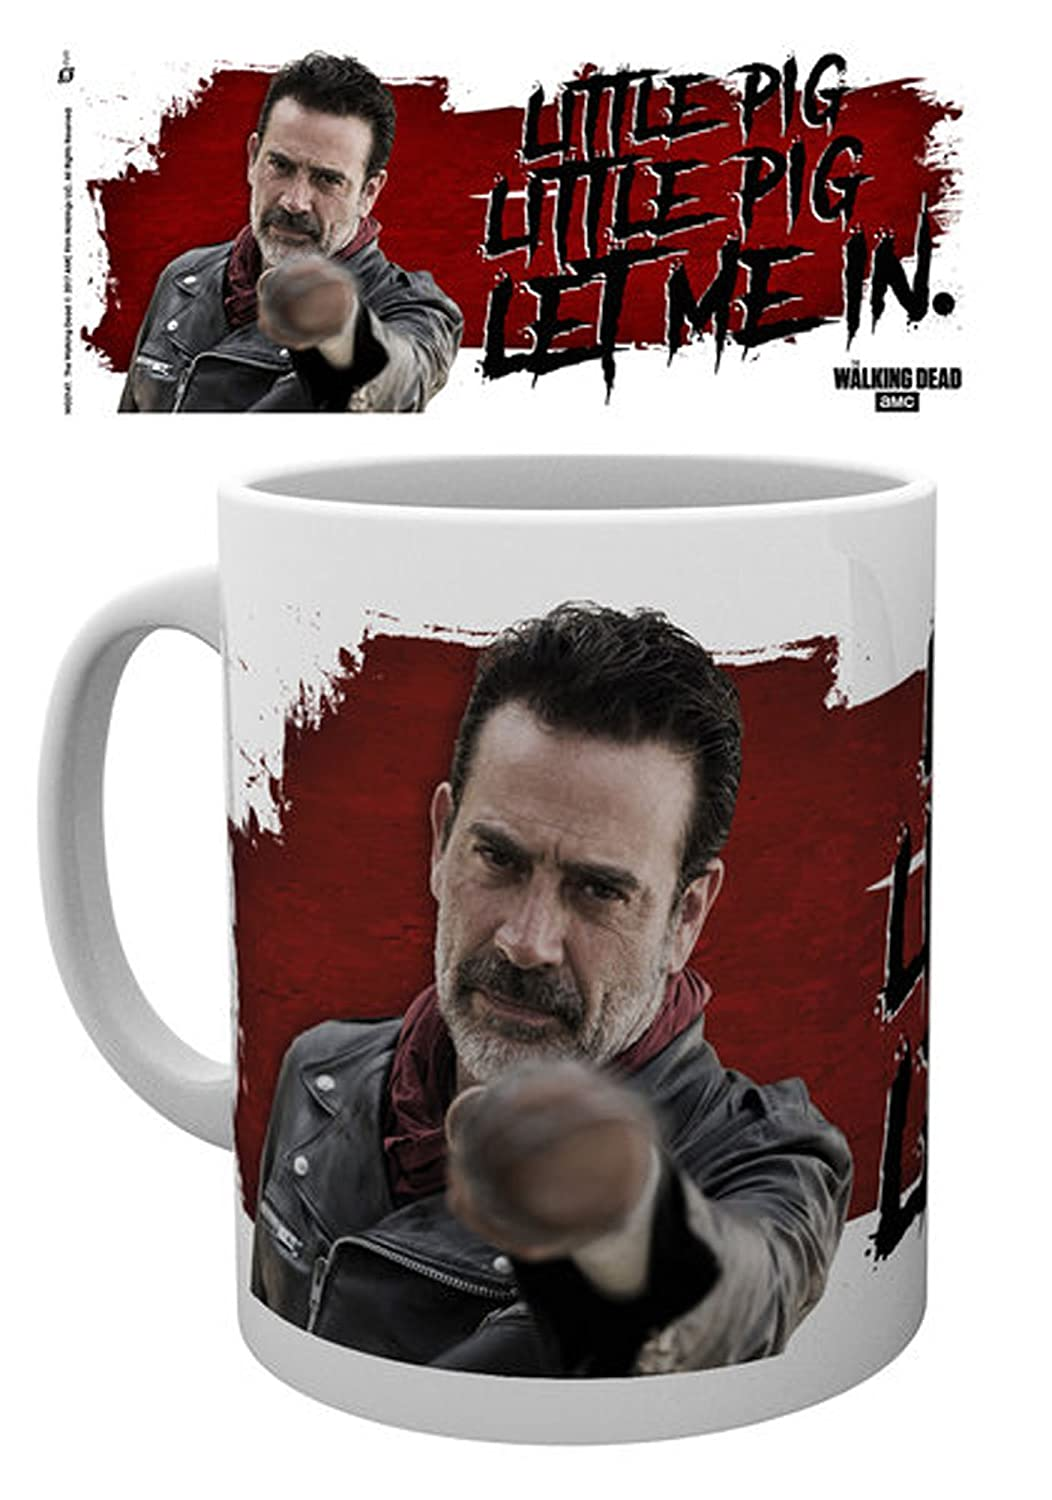 Empireposter – Walking Dead, The – NEGAN Little Pig Licensed Mug Size: Diameter Approx. 8.5 cm; Height: 9.5 cm, New – Description * Zombie Horror TV Series, Panoramic Print, Capacity 320 ml Ceramic Mug, White, Officially Licensed – Dishwasher and Microwav